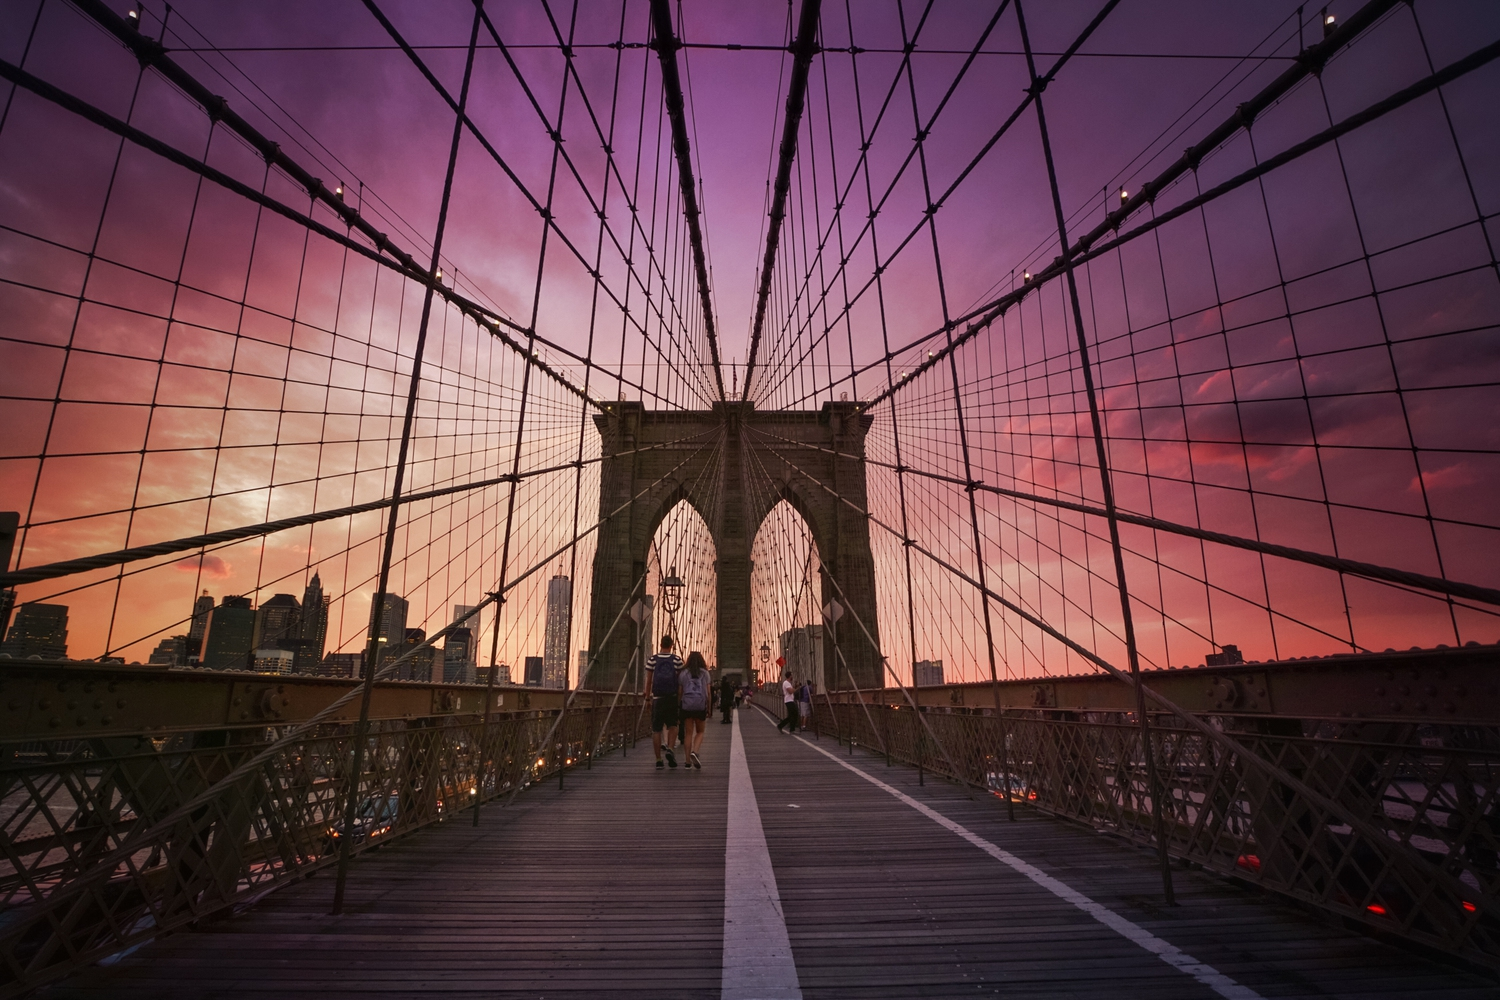 "Brooklyn Bridge Sunset - New York City | Sunset as seen while standing on the Brooklyn Bridge facing towards the New York City skyline.   (last night! taken with my Sony A7RII)  What a sunset!   ----    Tons of information about my <a href=""http://www.amazon.com/gp/product/1440339589/ref=as_li_tl?ie=UTF8&camp=1789&creative=9325&creativeASIN=1440339589&linkCode=as2&tag=nyththle0e-20&linkId=ER6GYT5FRYNMEPLF"" rel=""nofollow"">New York photography book</a> with sample pages (including where to order and what stores are carrying it) here:  <a href=""http://nythroughthelens.com/post/92873566010/ny-through-the-lens-the-book-i-am-super"" rel=""nofollow"">NY Through The Lens: A New York Coffee Table Book</a> ---   View my New York City photography at my website <a href=""http://nythroughthelens.com/"" rel=""nofollow"">NY Through The Lens</a>.  View my Travel photography at my travel blog: <a href=""http://travelinglens.me/"" rel=""nofollow"">Traveling Lens</a>.  Interested in my work and have questions about PR and media? Check out my:  <a href=""http://nythroughthelens.com/about"" rel=""nofollow"">About Page</a> 